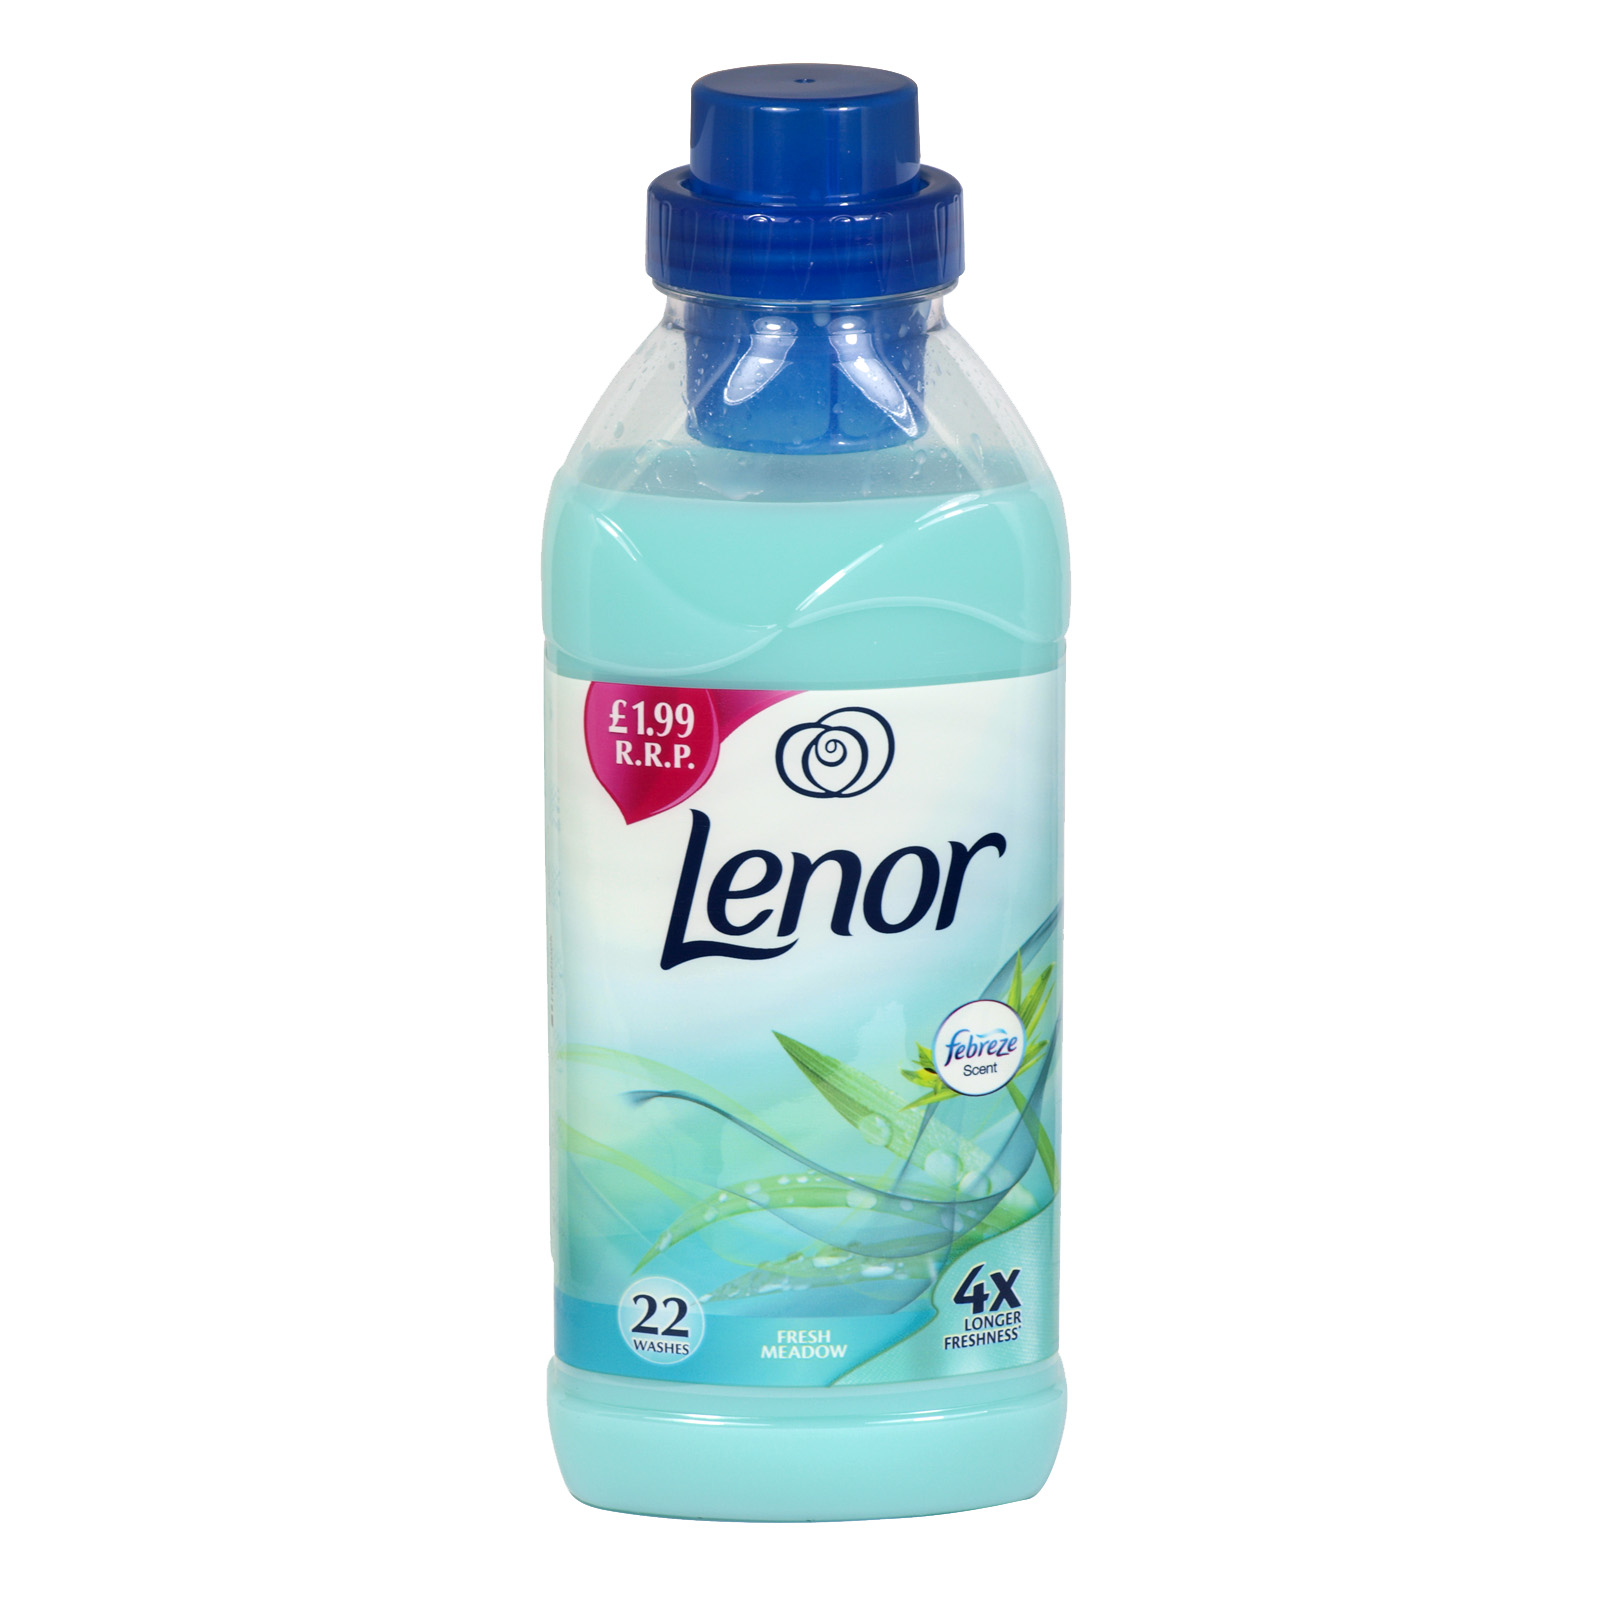 LENOR FABRIC CONCENTRATE 550ML PM